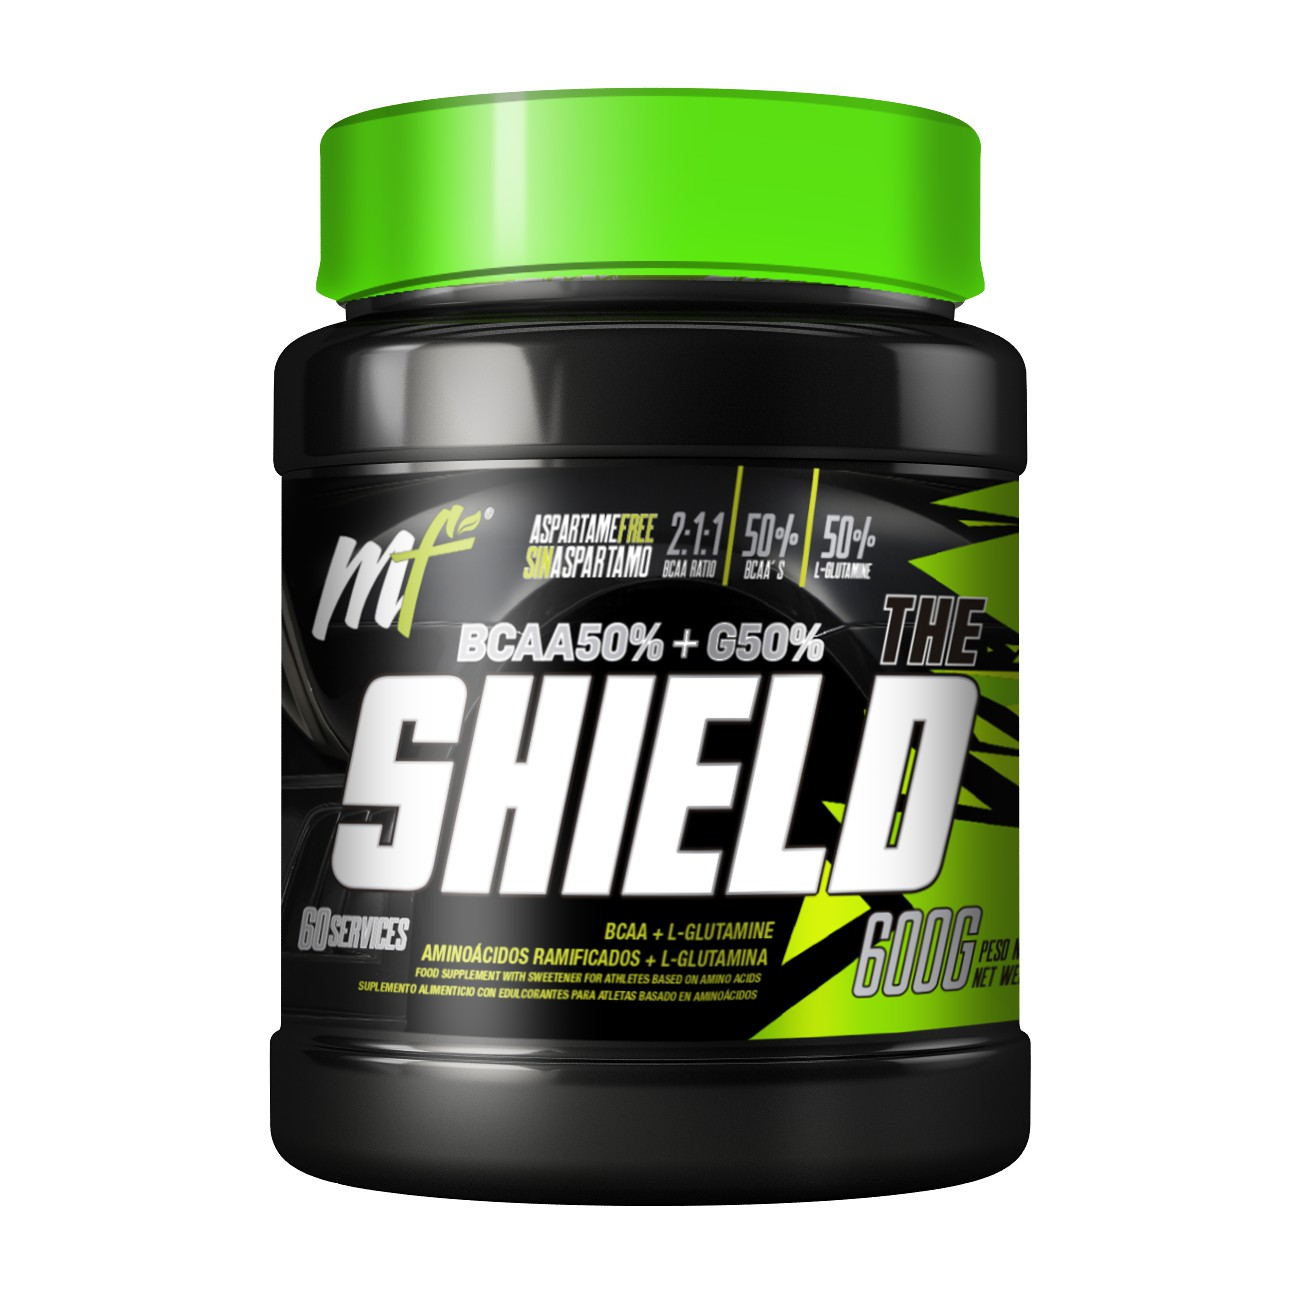 THE SHIELD BCAA   GLUTAMINE AMINOACIDOS Menu Fitness